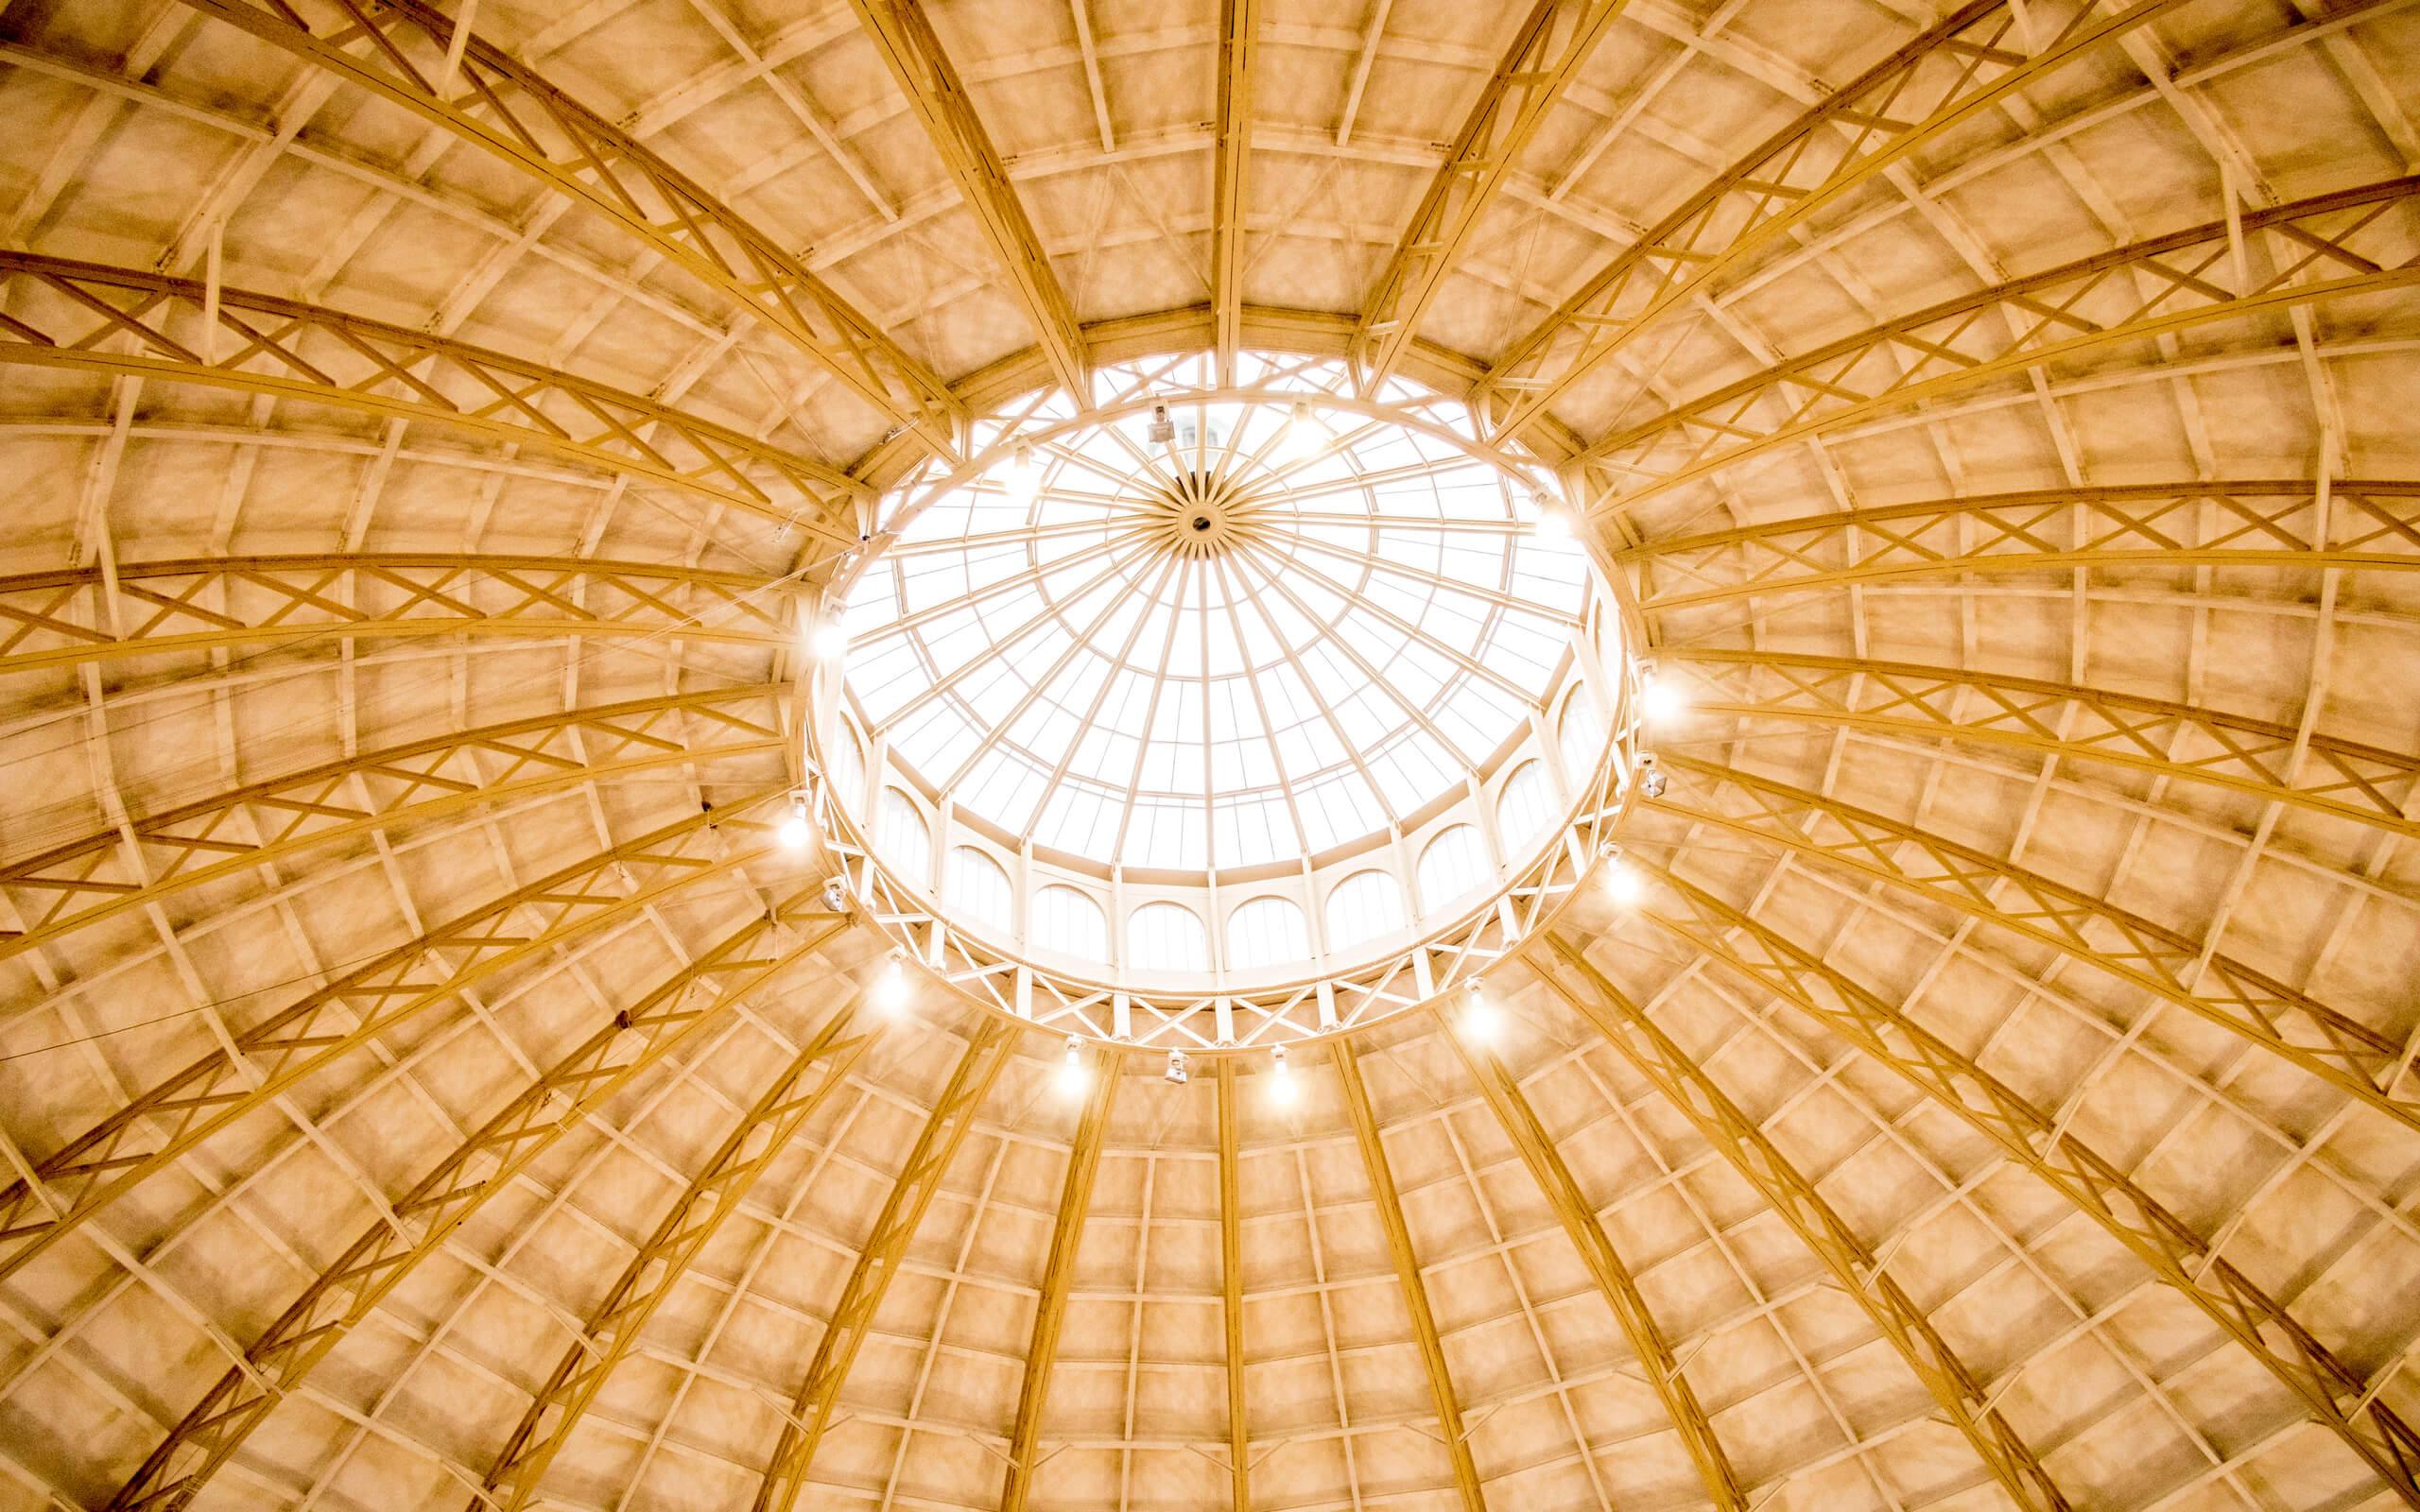 A roof of the Devonshire Dome in Buxton seen from the inside